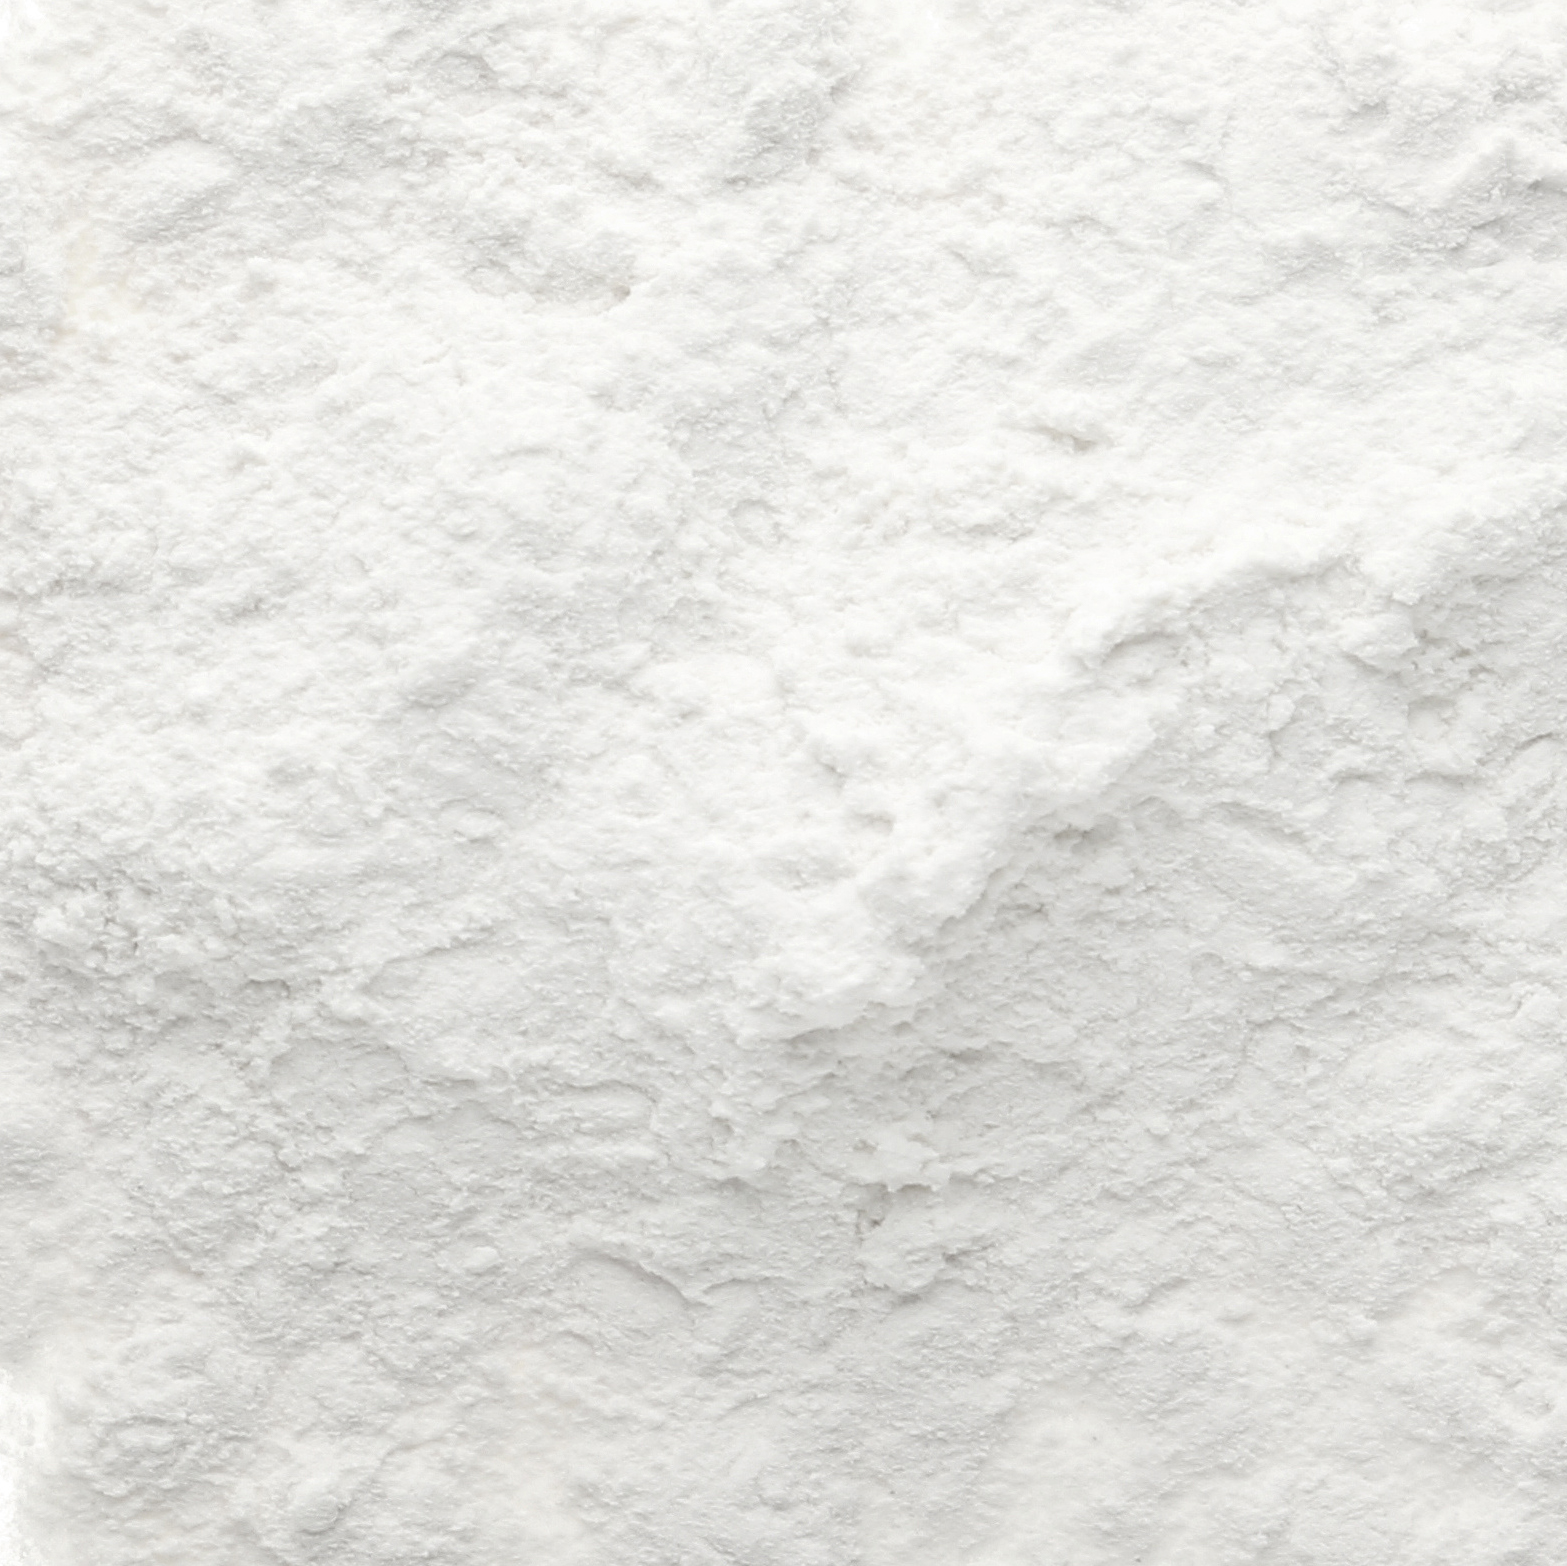 Plain Flour | Not Organic